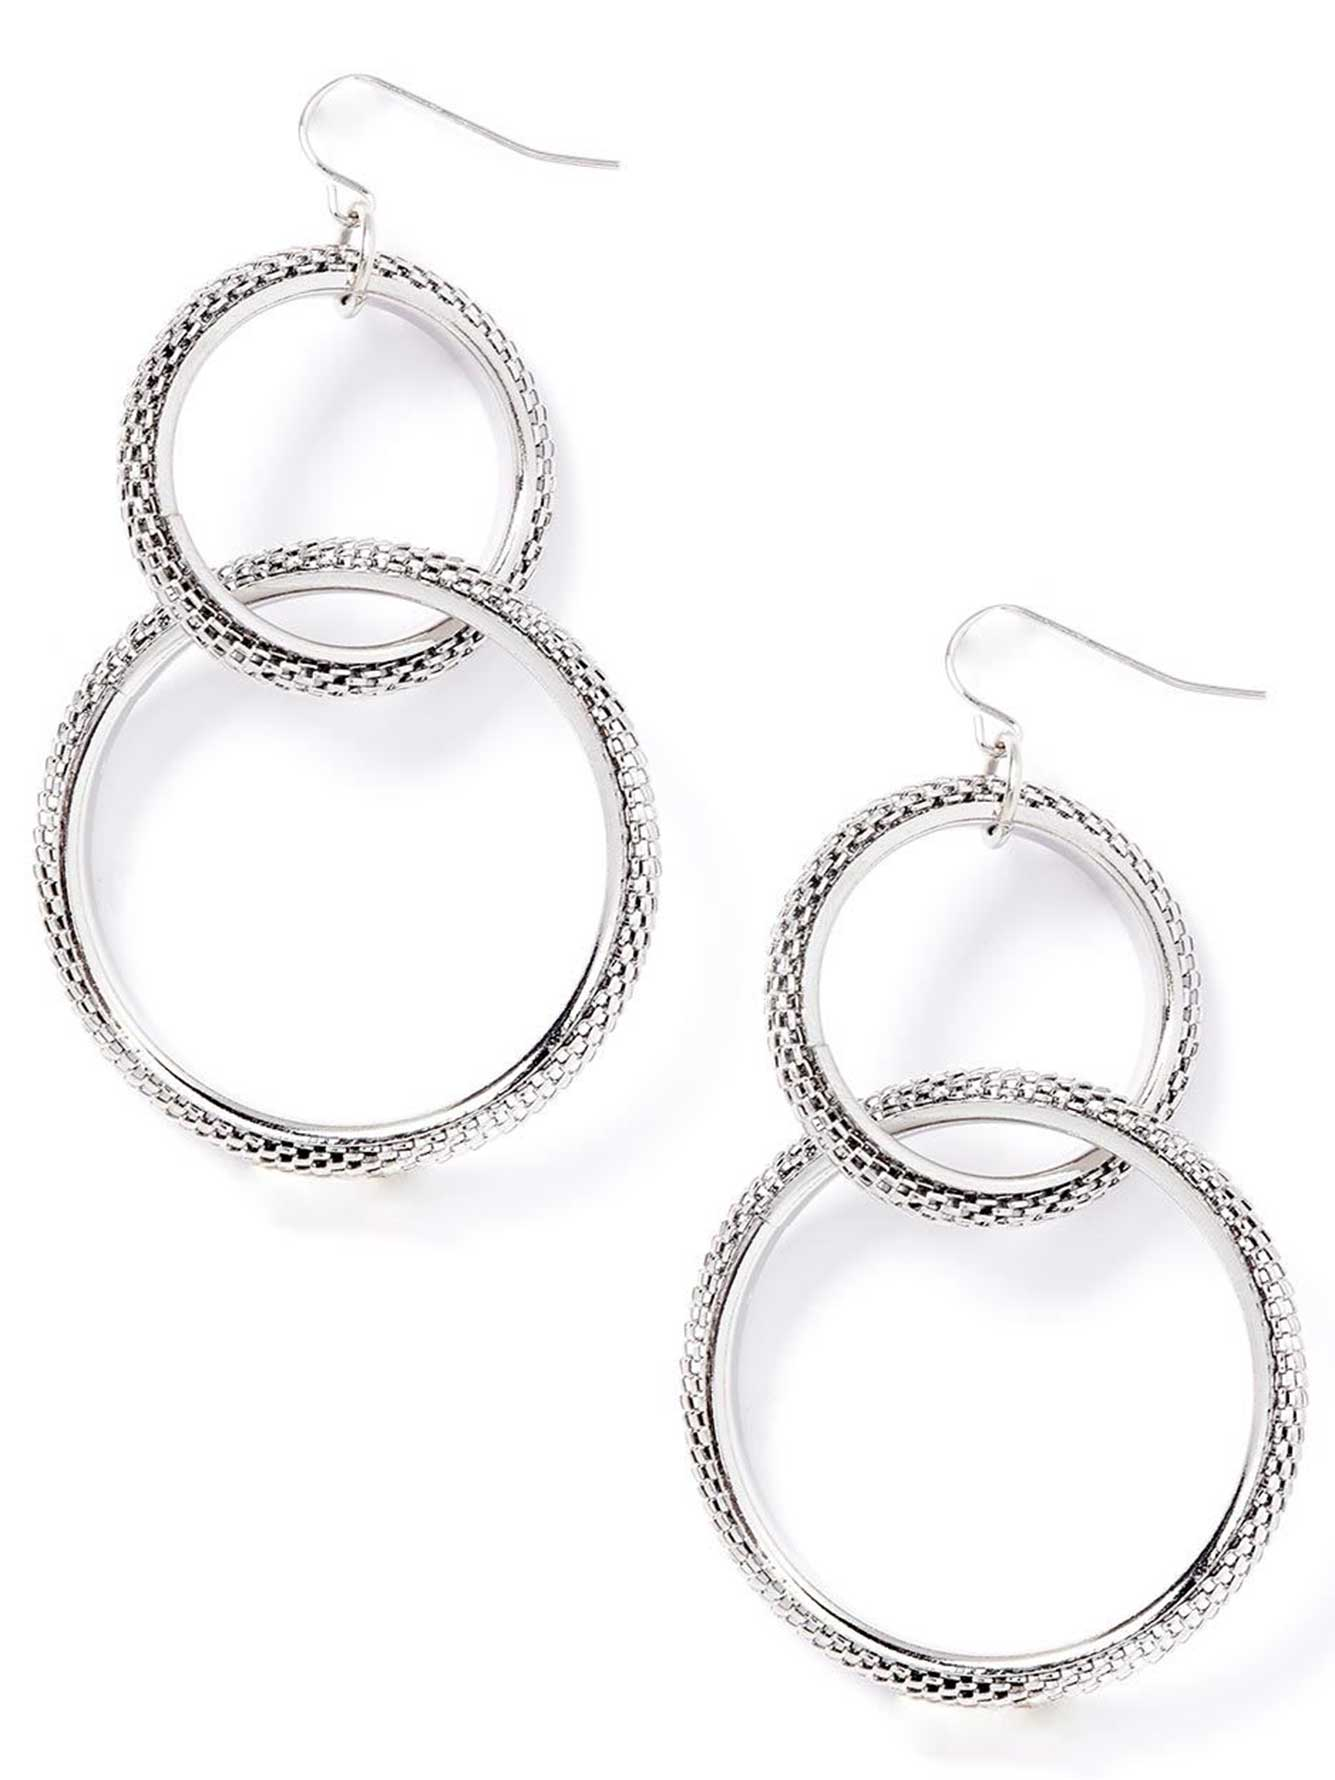 Interlocked Hoop Earrings